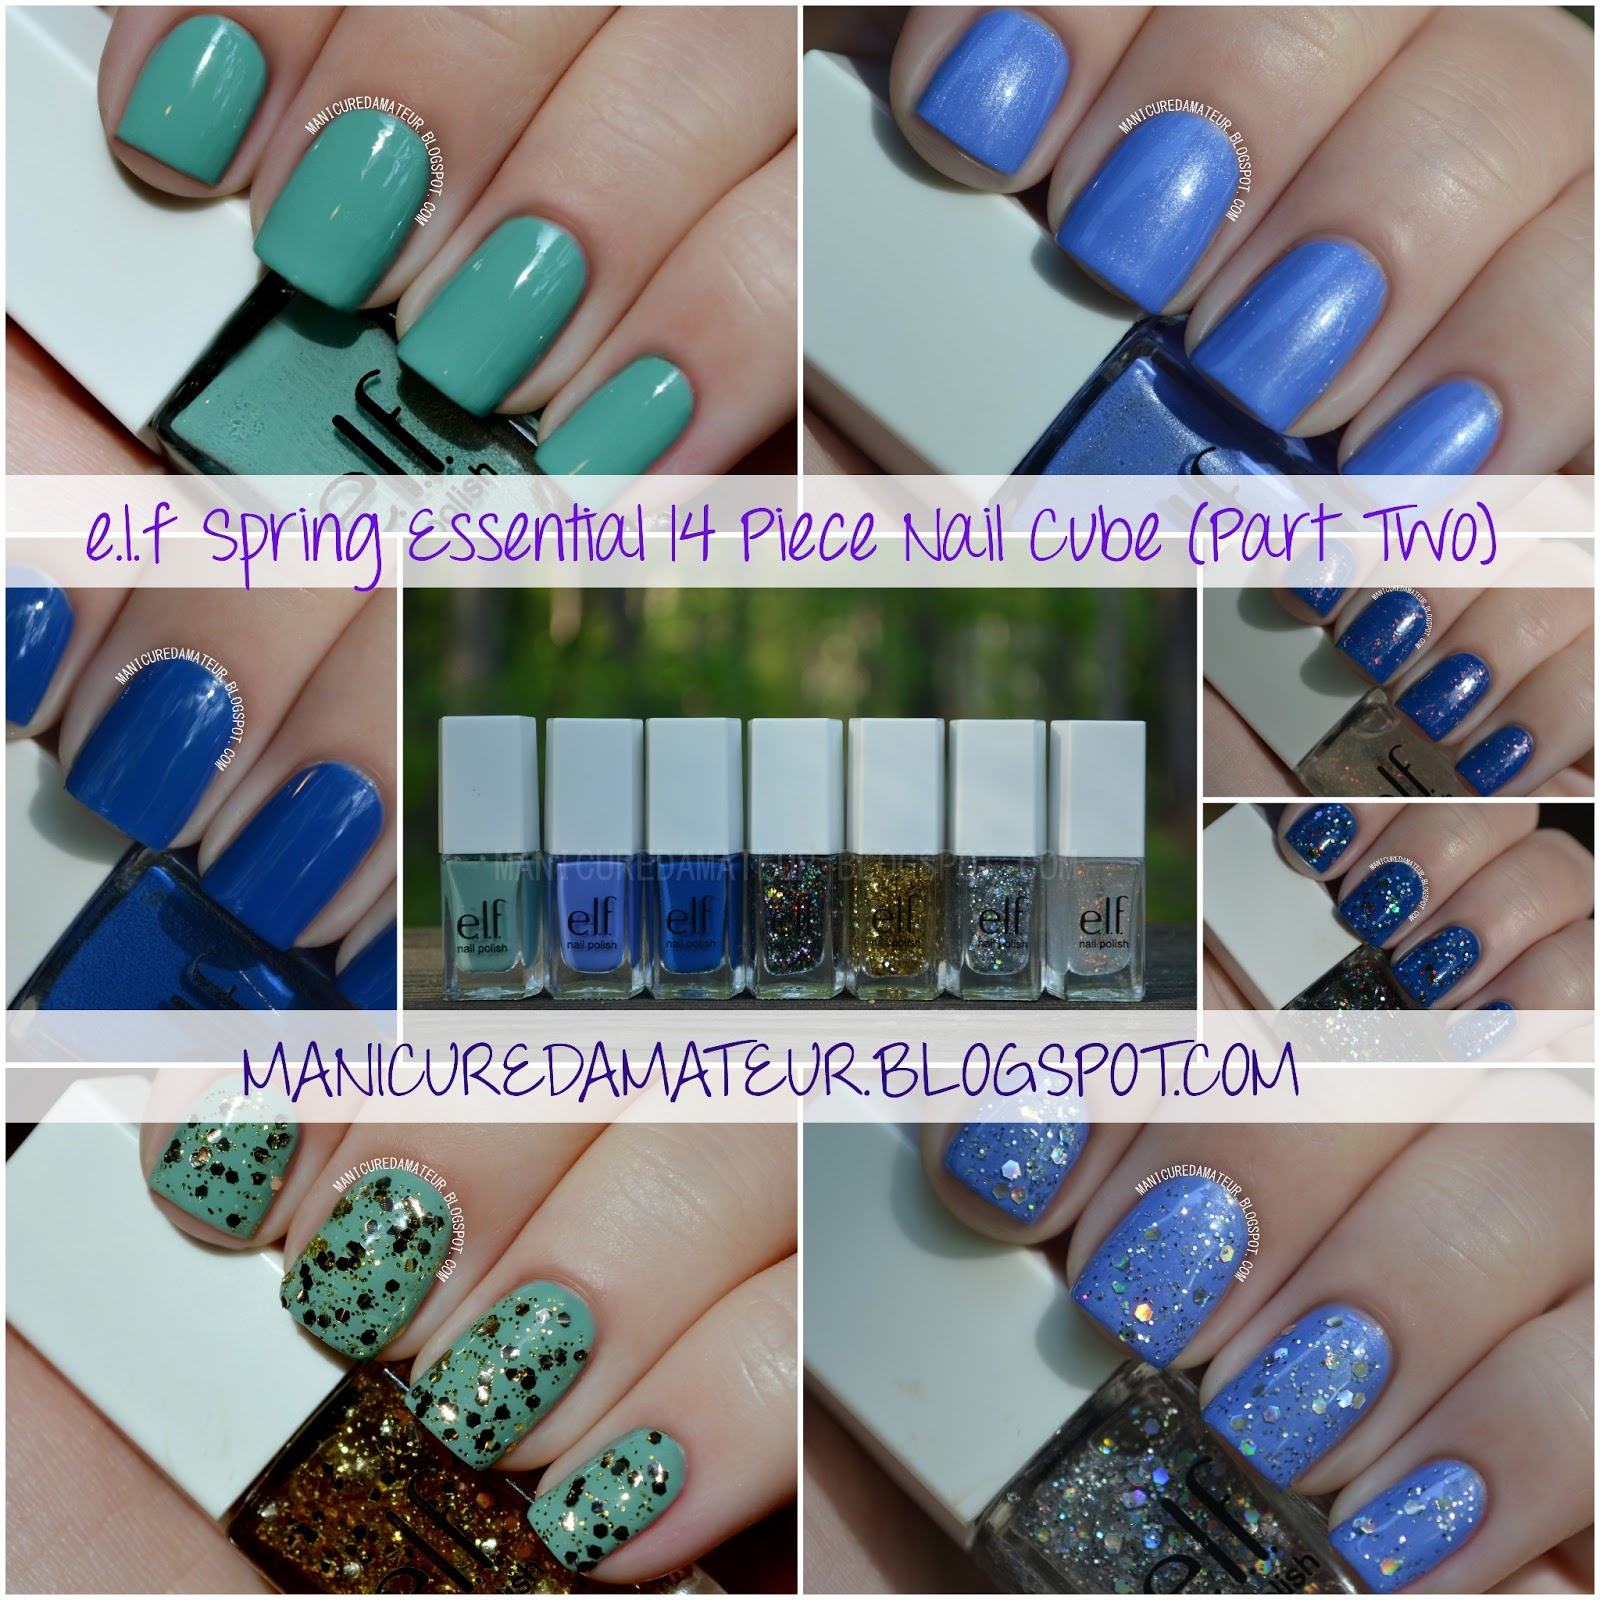 E.L.F Essential Spring 14 Piece Nail Cube Swatches and Review (Part Two)